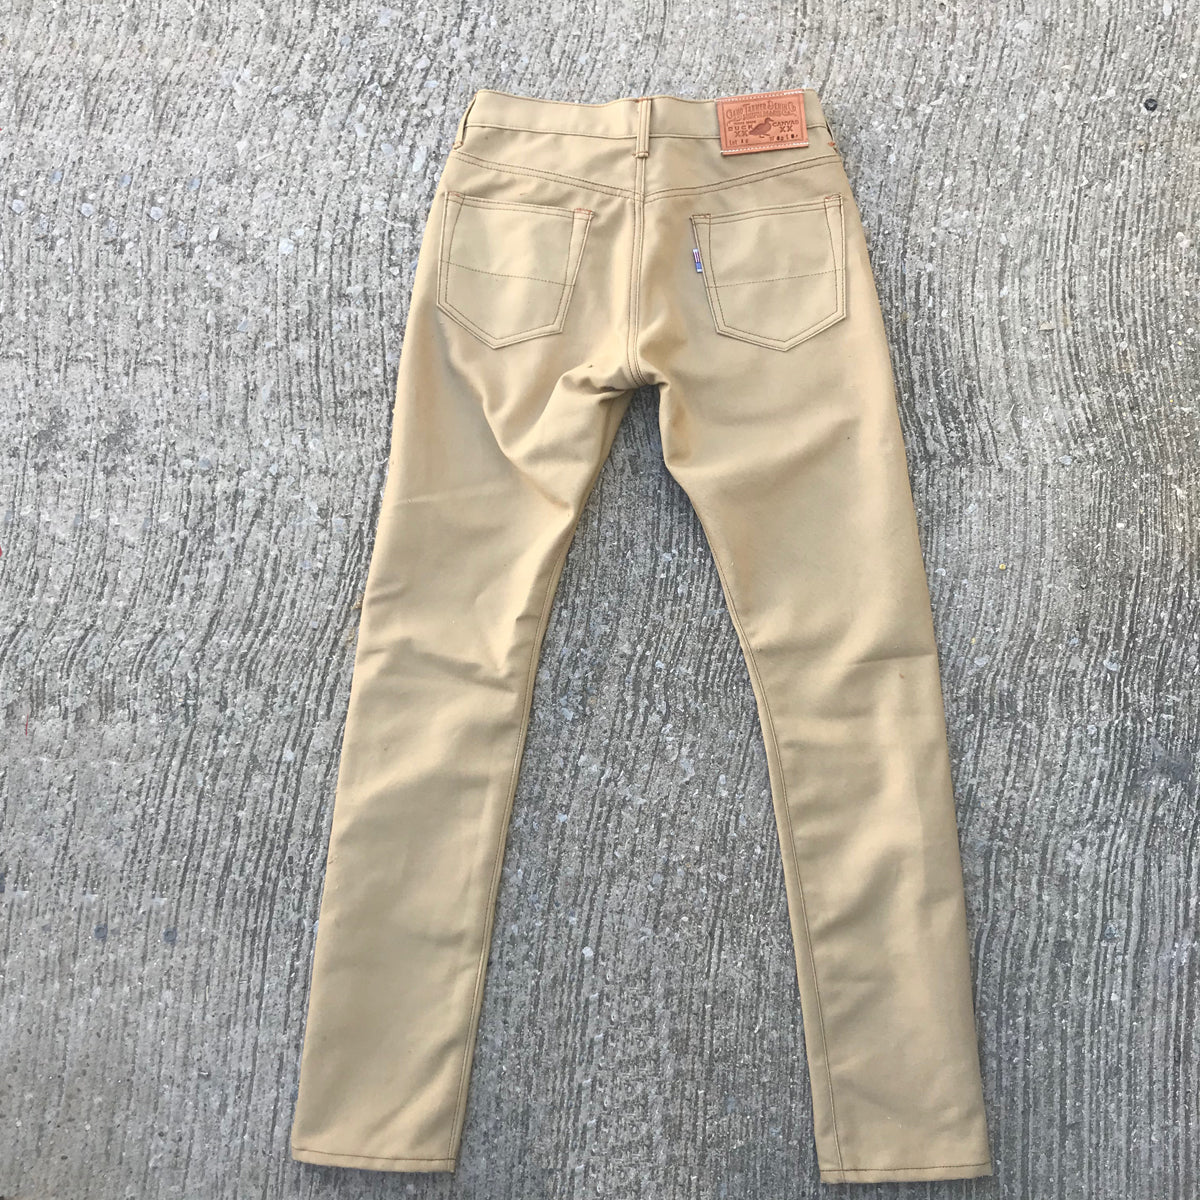 12oz Duck Canvas Khaki 5 POCKET Version